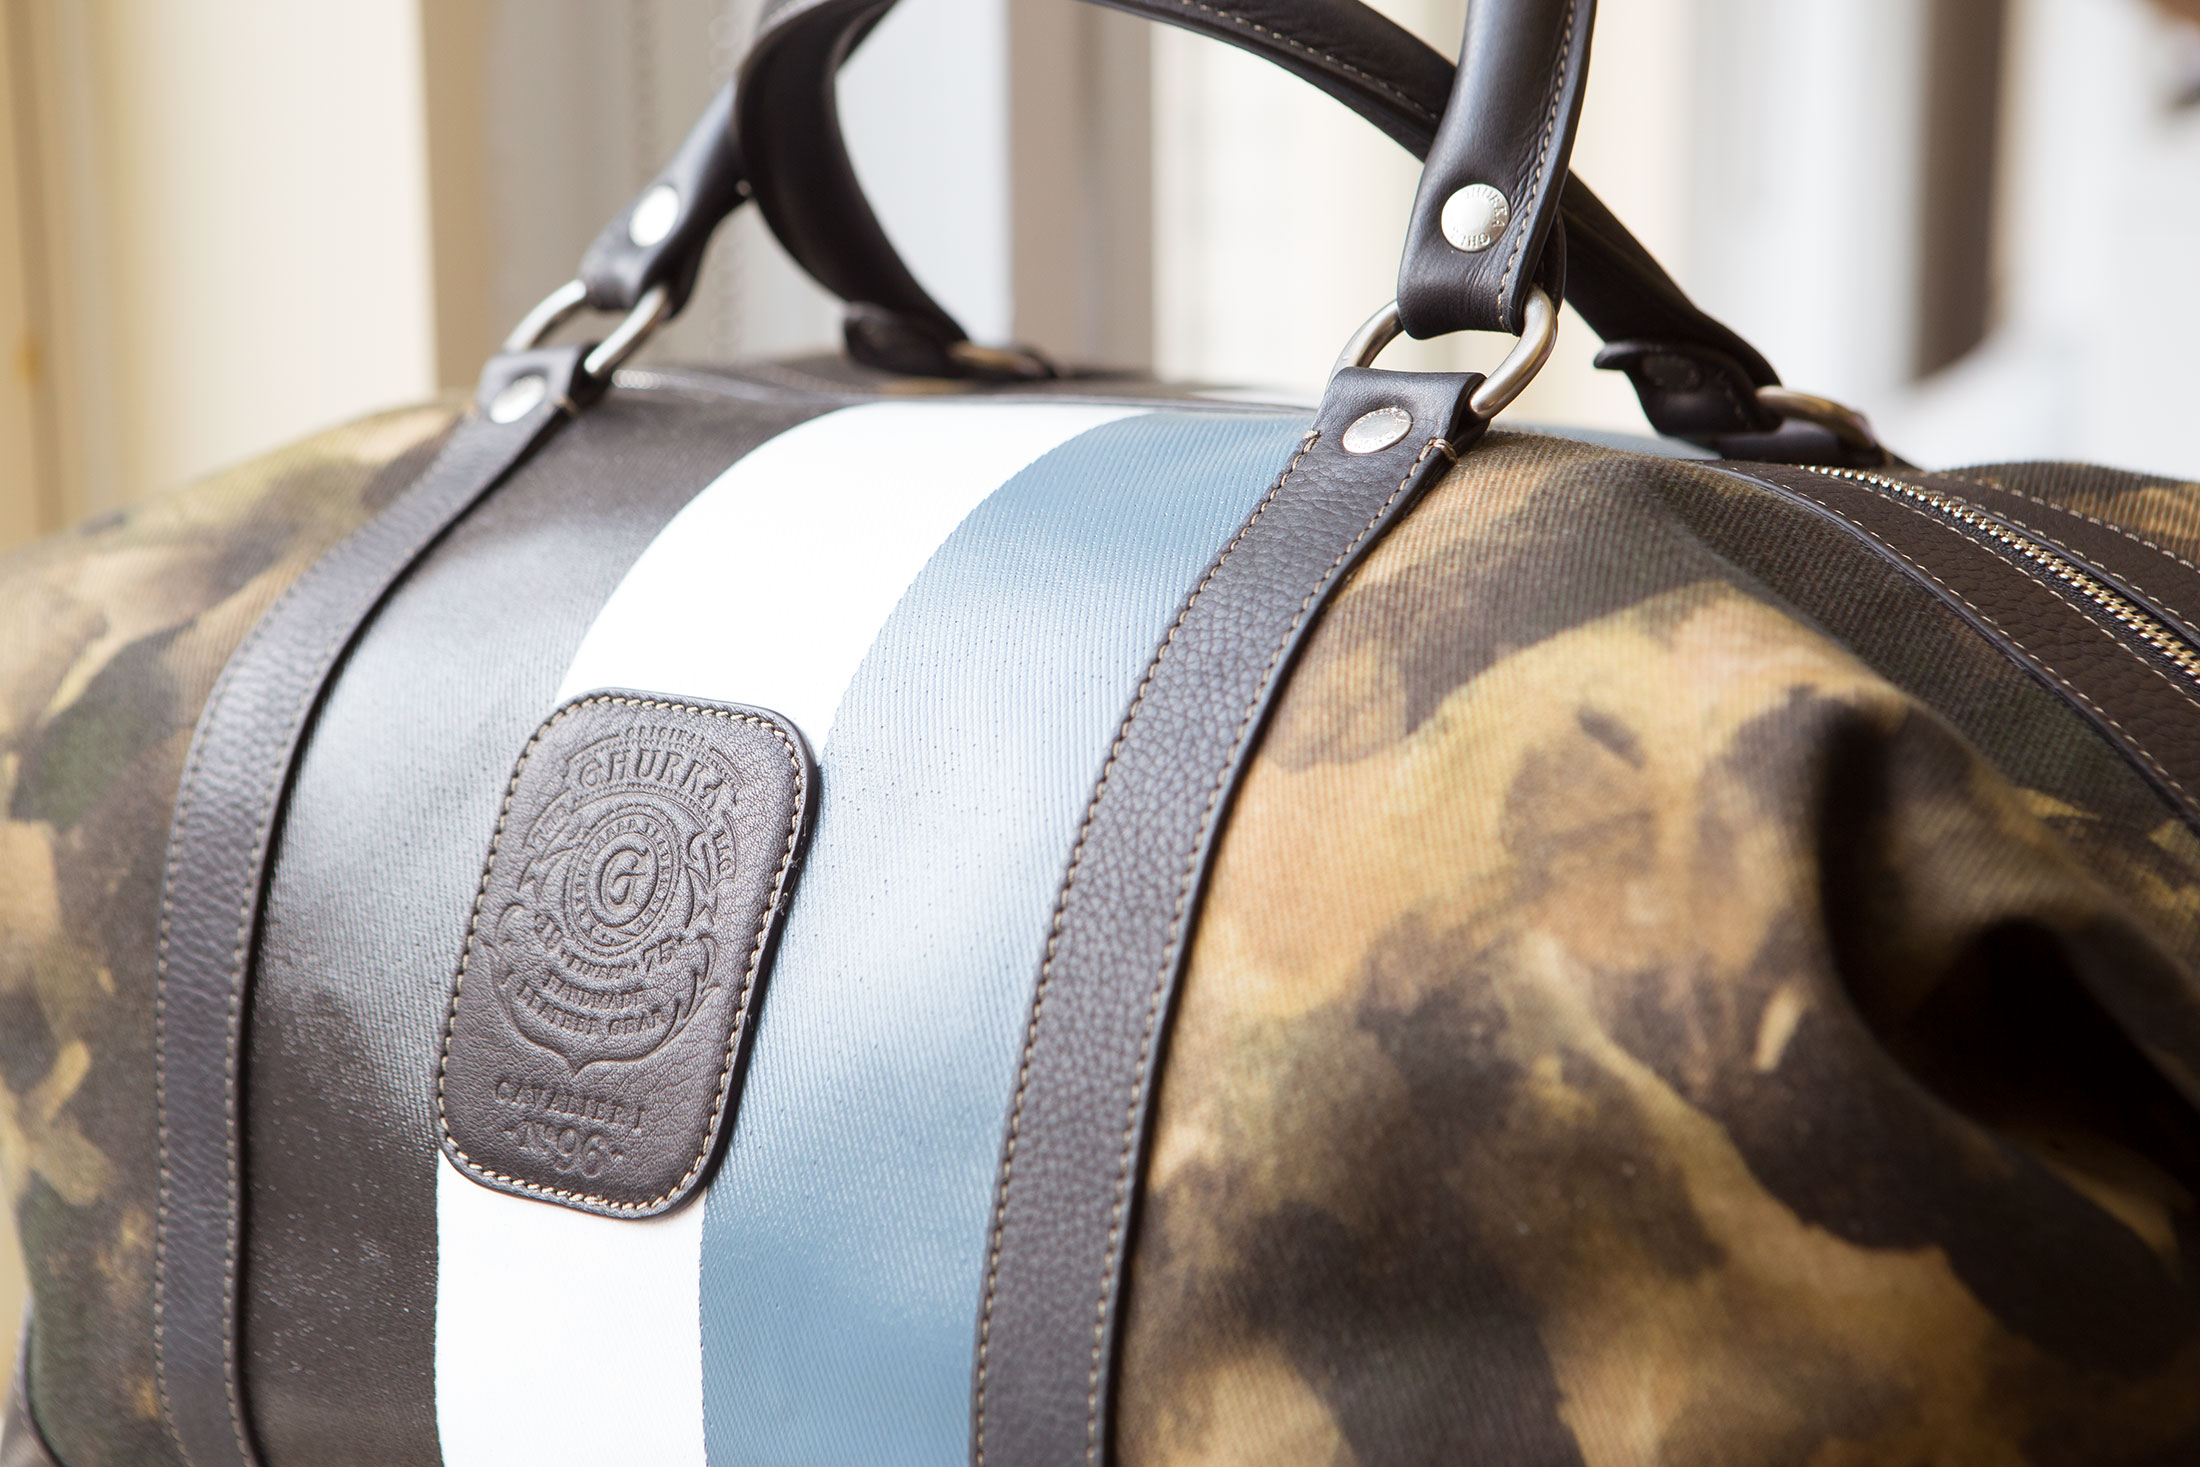 A bag from Ghurka's fall collection that features Formby's camouflage-inspired print.